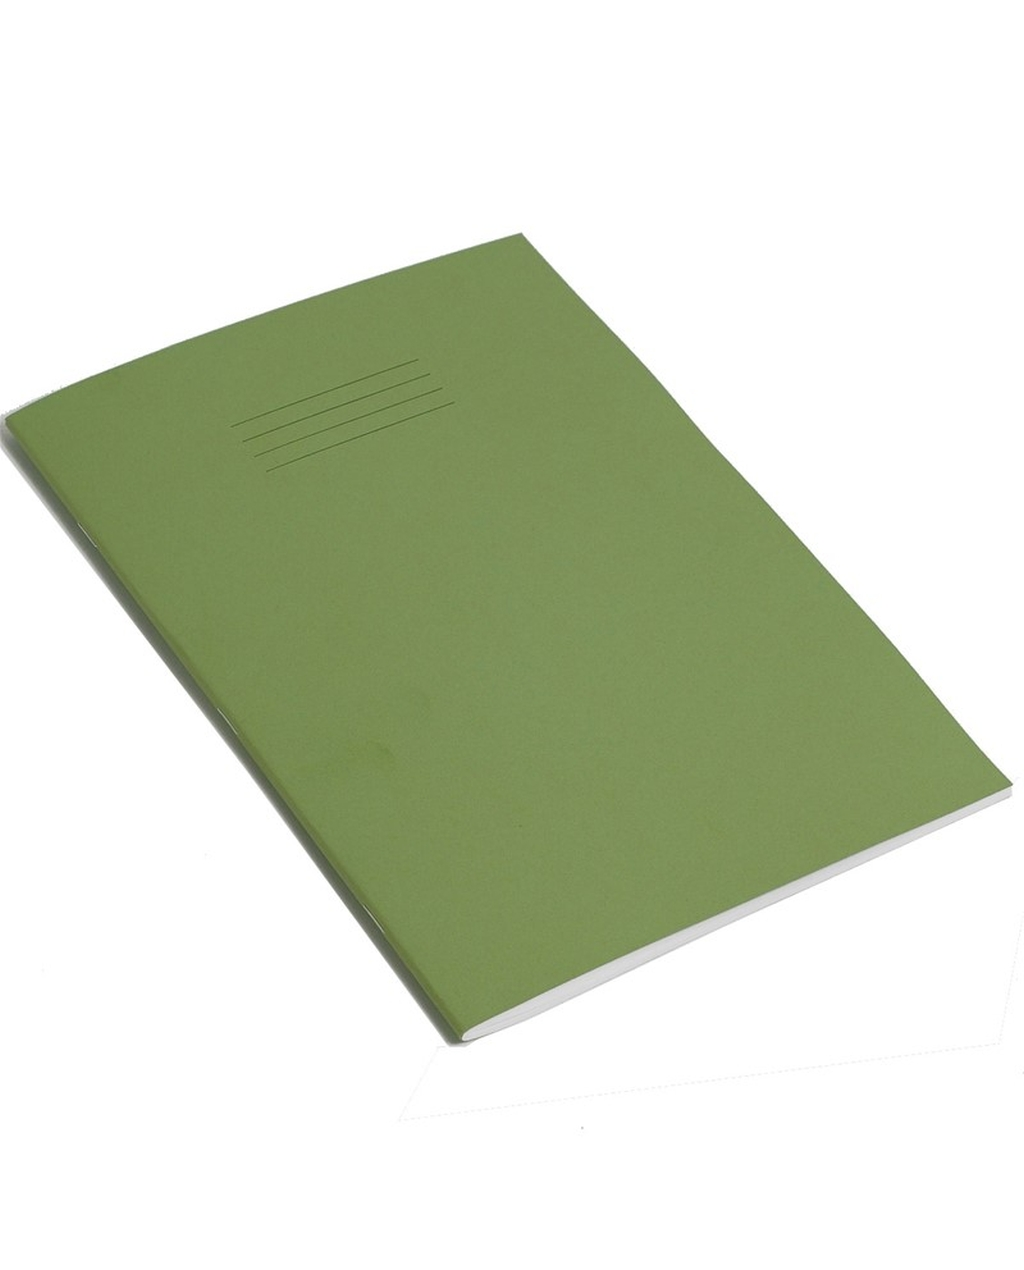 Exercise Book 9 x 7 (229 x 178mm) Light Green Cover Half 13mm Ruled & Half Plain 48 Pages